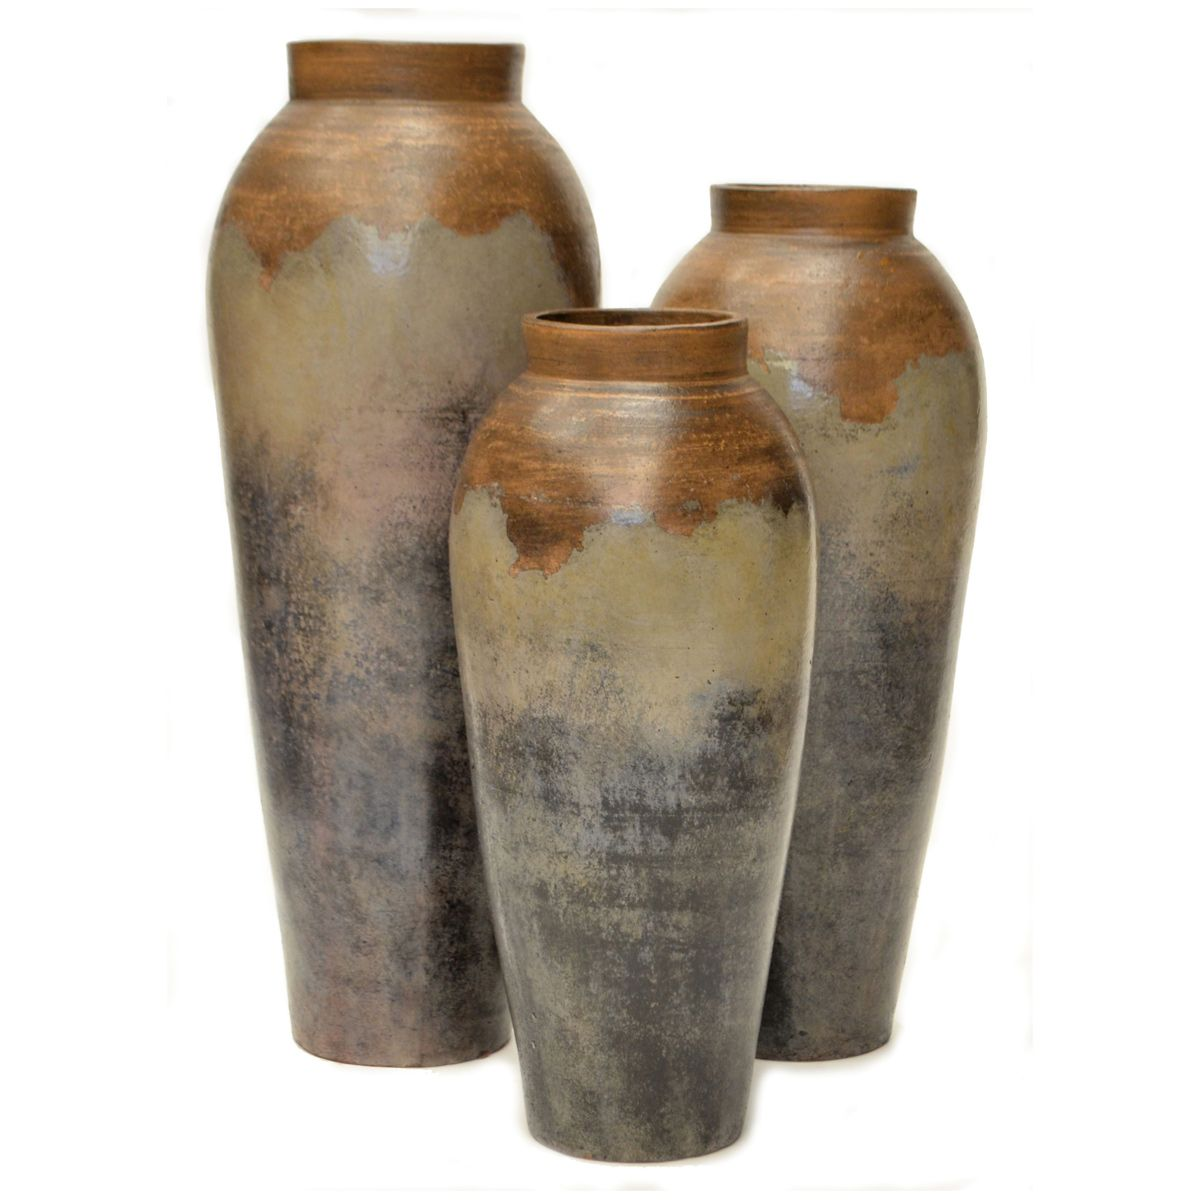 Joaquin Gray Vases Set Of 3 In 2020 Large Floor Vase Vase